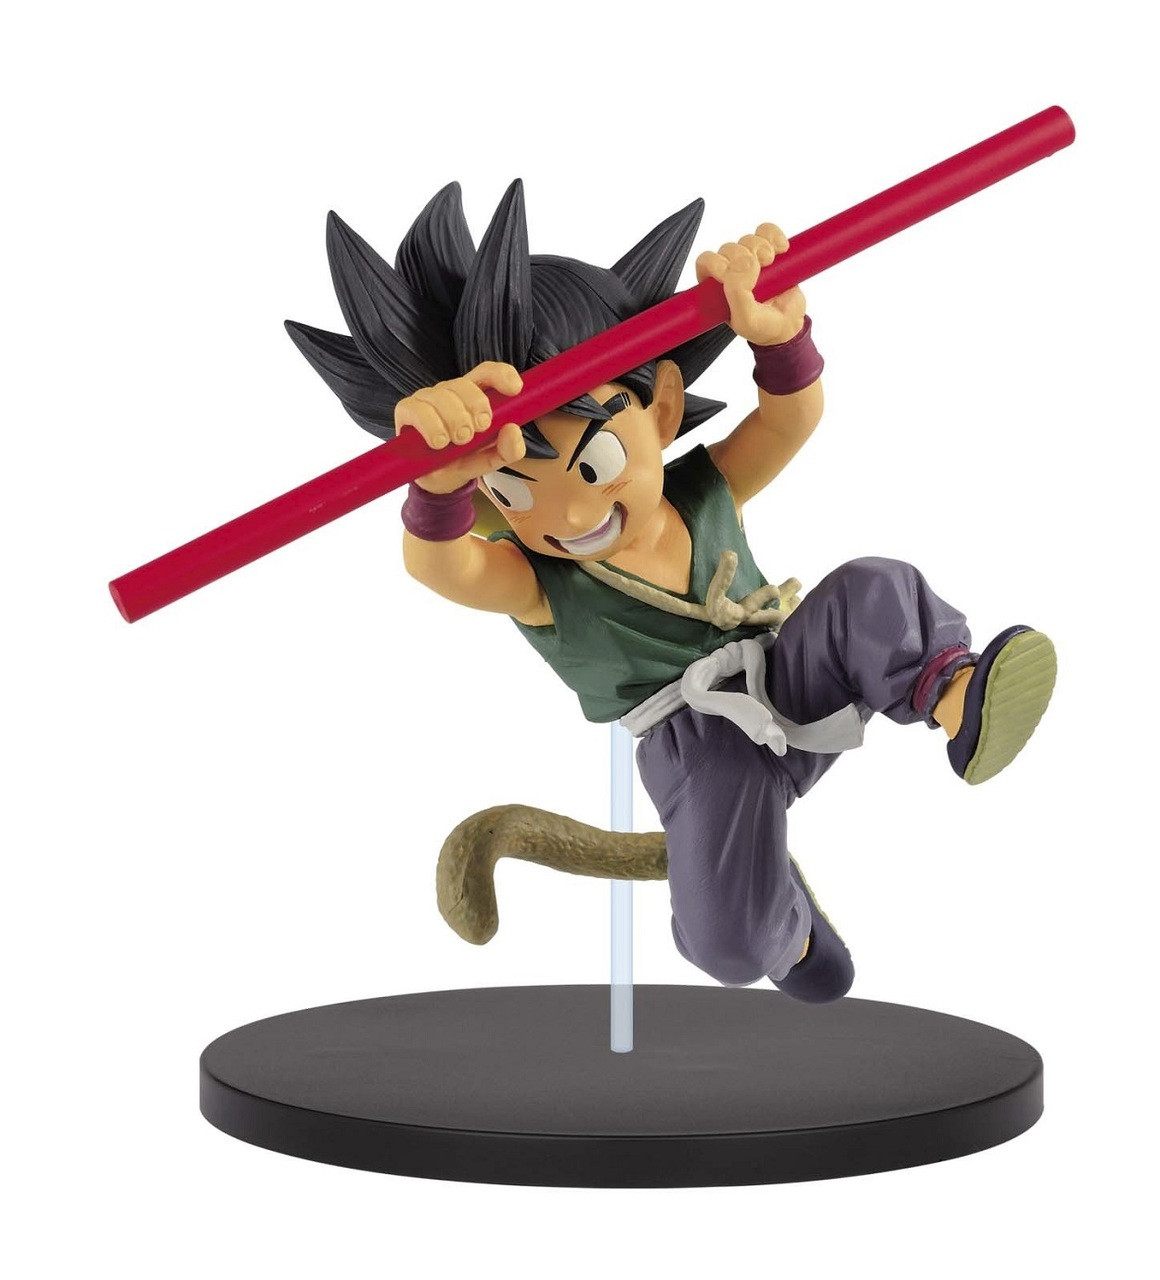 Dragon Ball Super Son Goku Fes!! Vol. 7 - Son Goku - 8 Inch PVC Collectible Figure